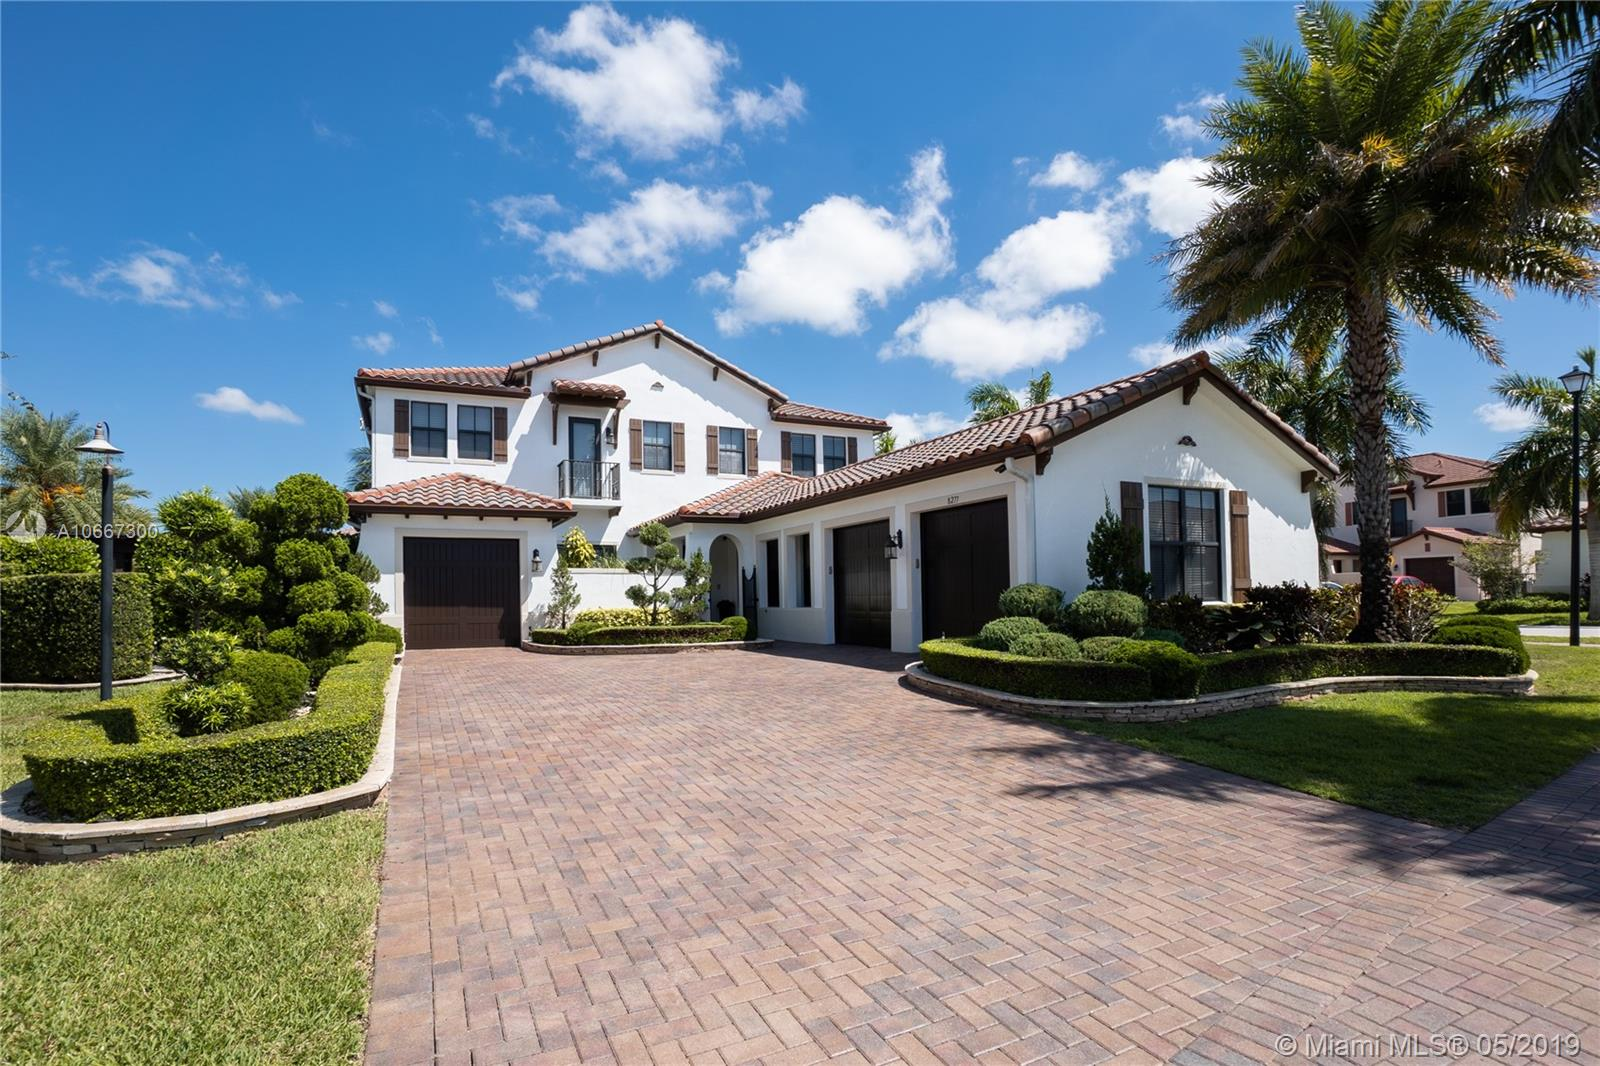 8277 NW 30th St, Cooper City, Florida